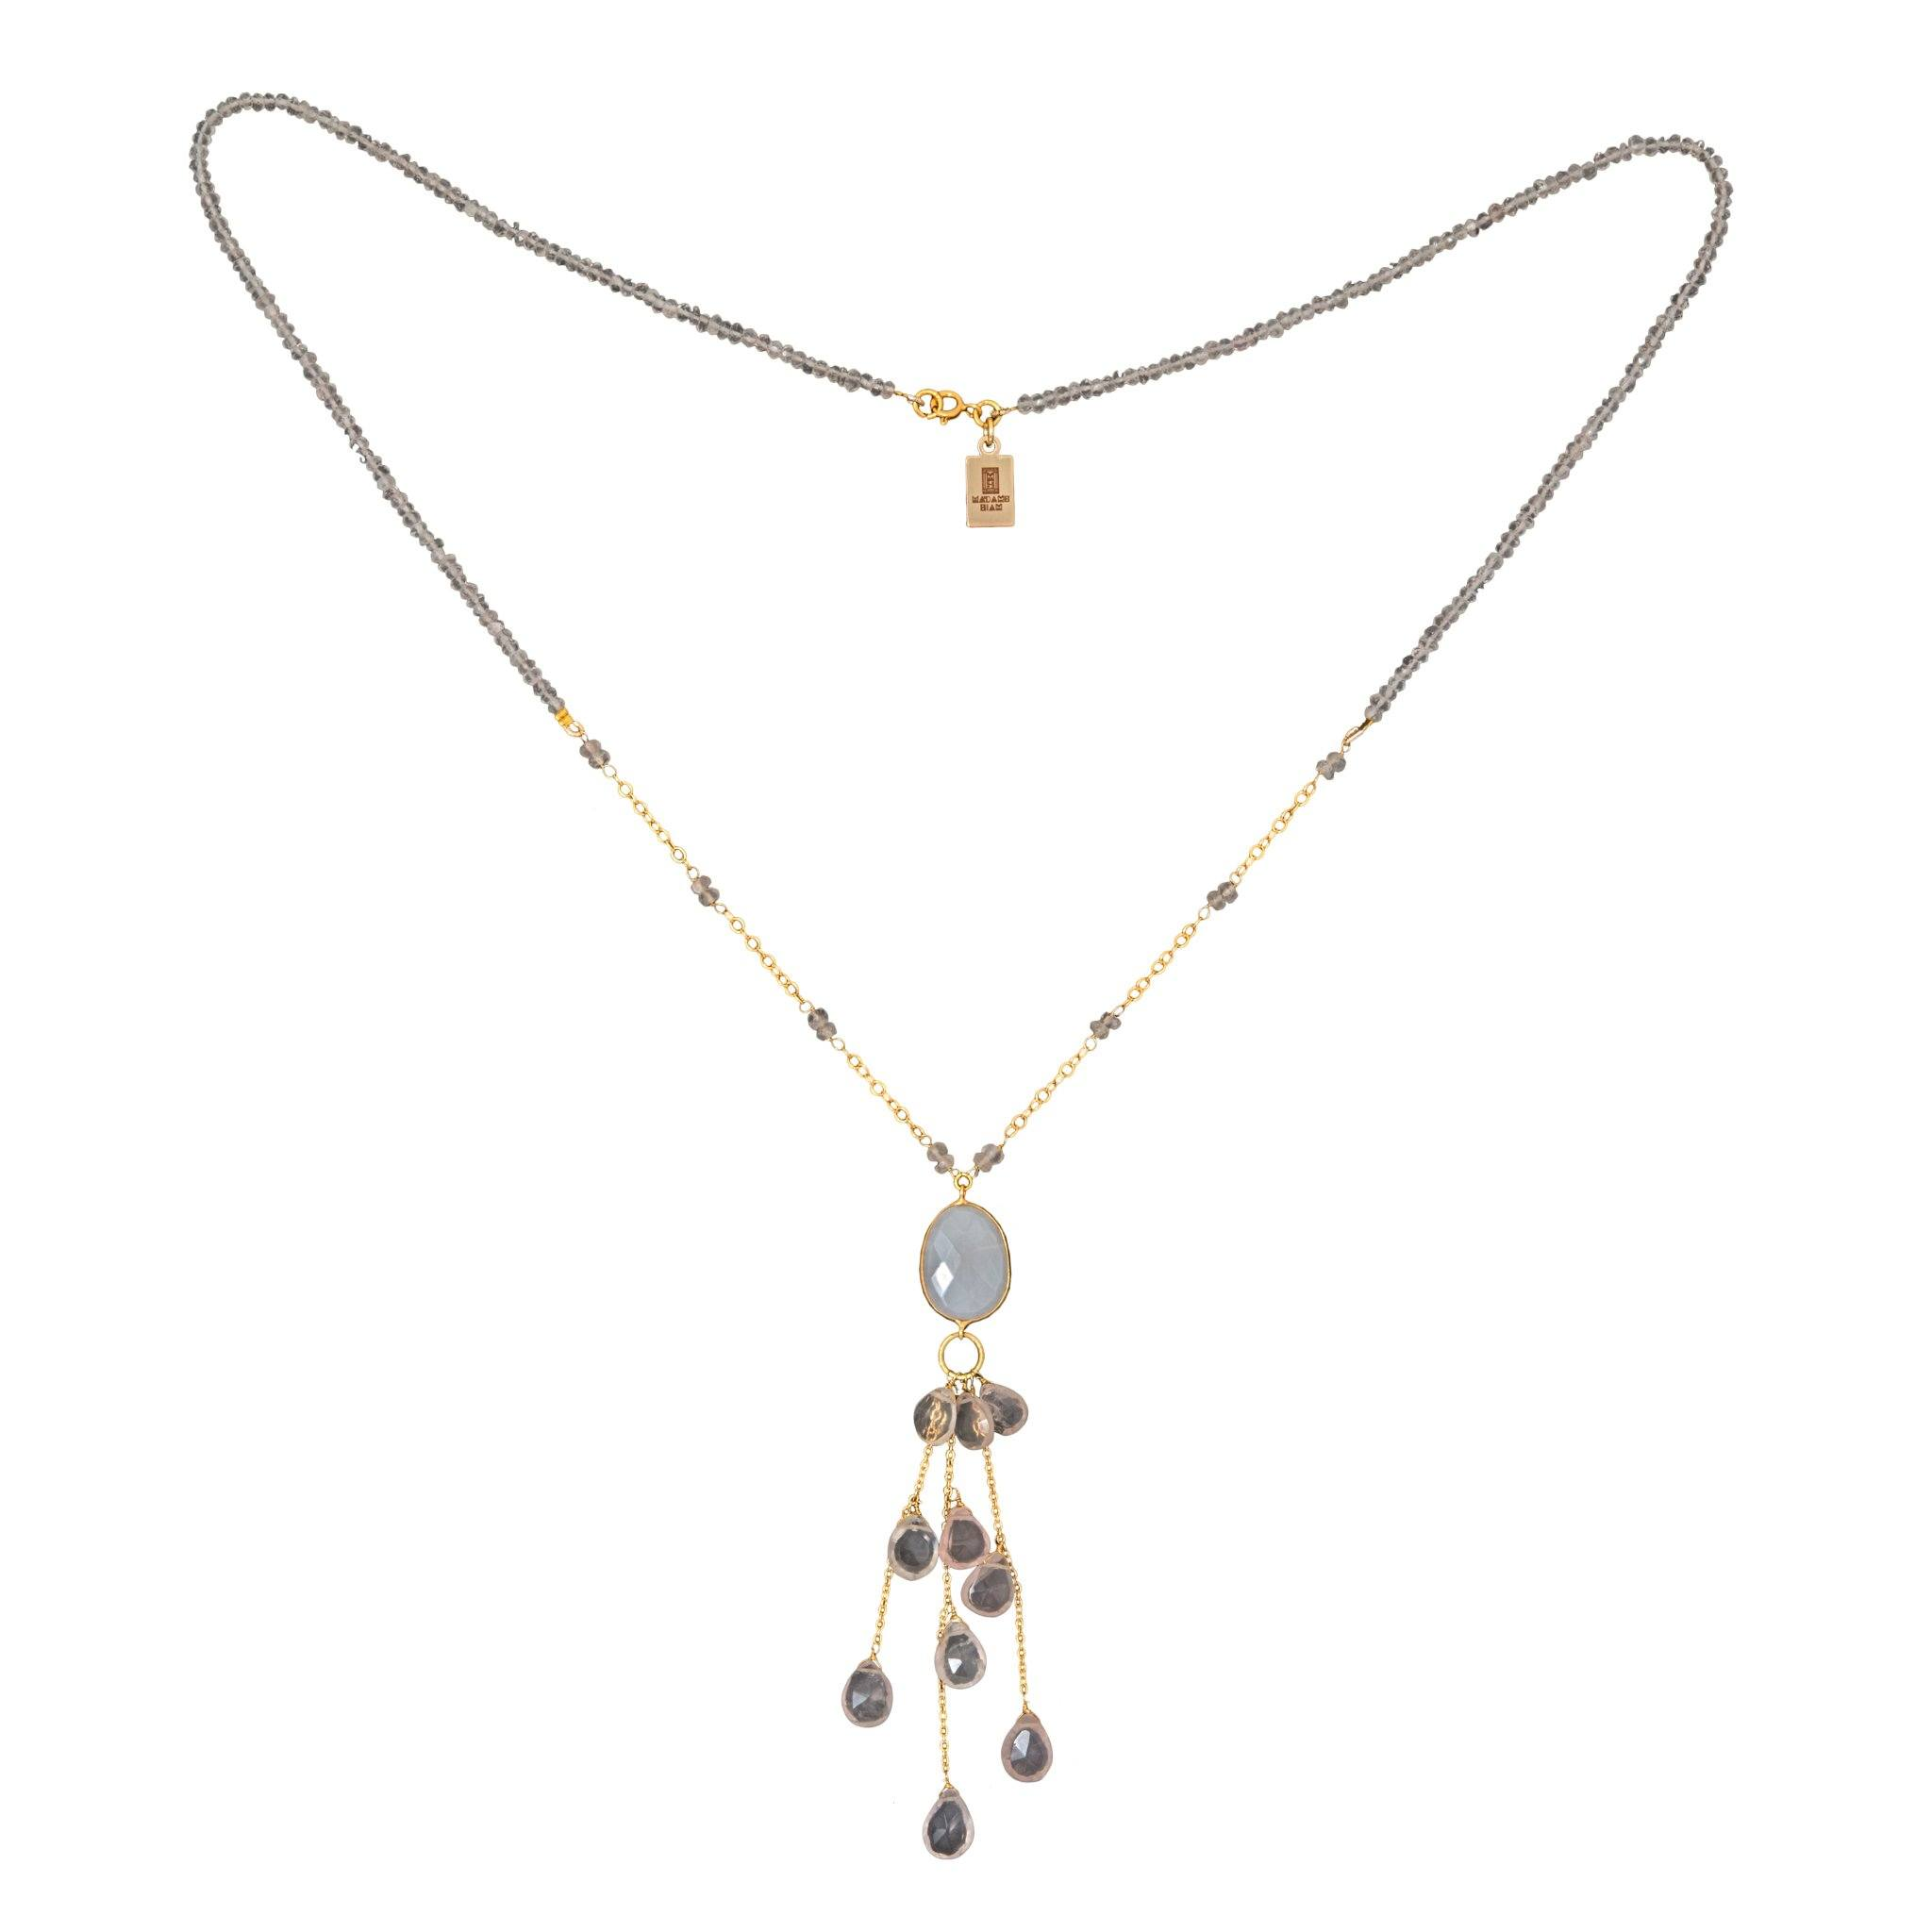 LUZ rose quartz long necklace with drops - MadamSiam